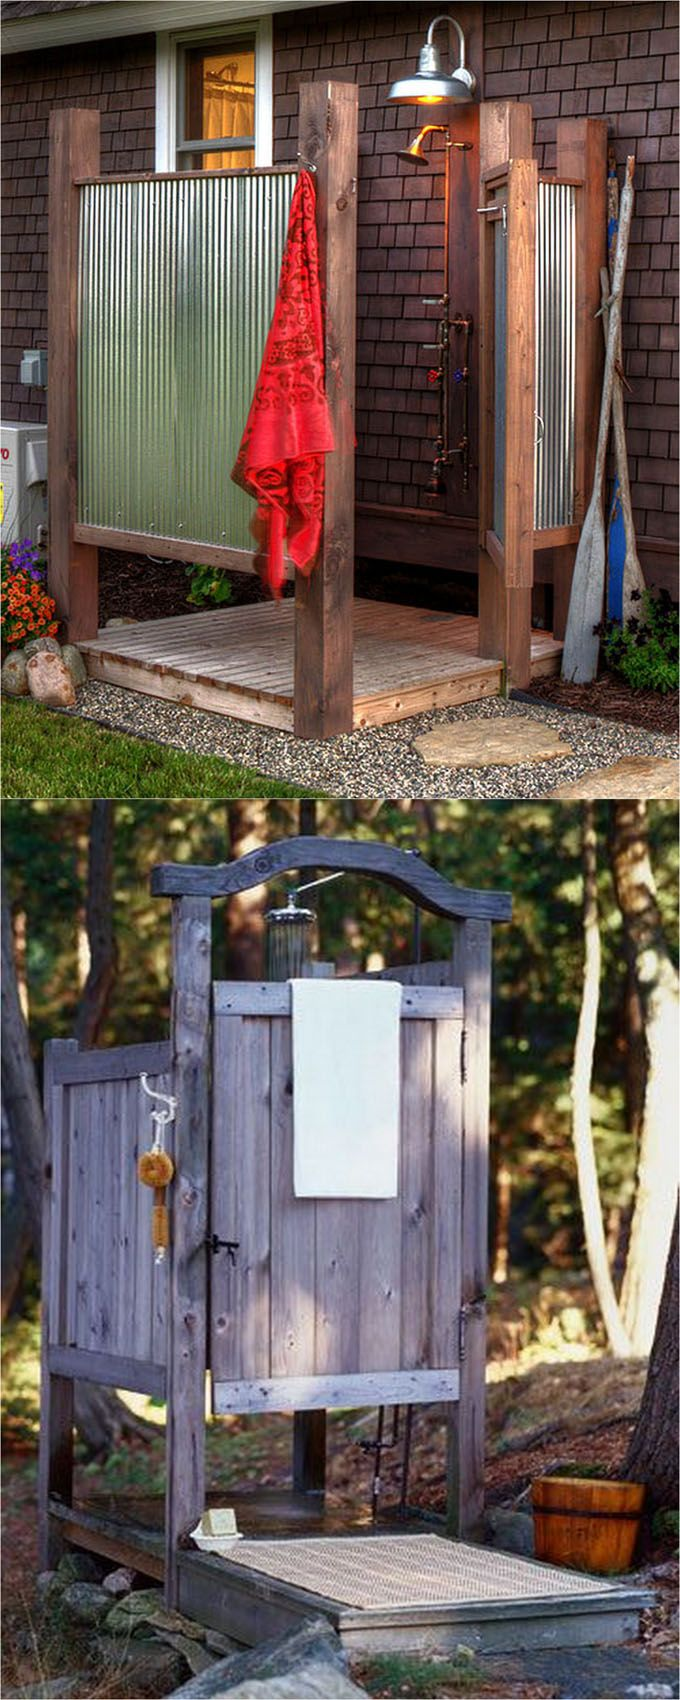 32 beautiful DIY outdoor showers: how to build enclosures with simple materials, best outdoor shower fixtures, creative designs and more! - apieceofrainbow.com